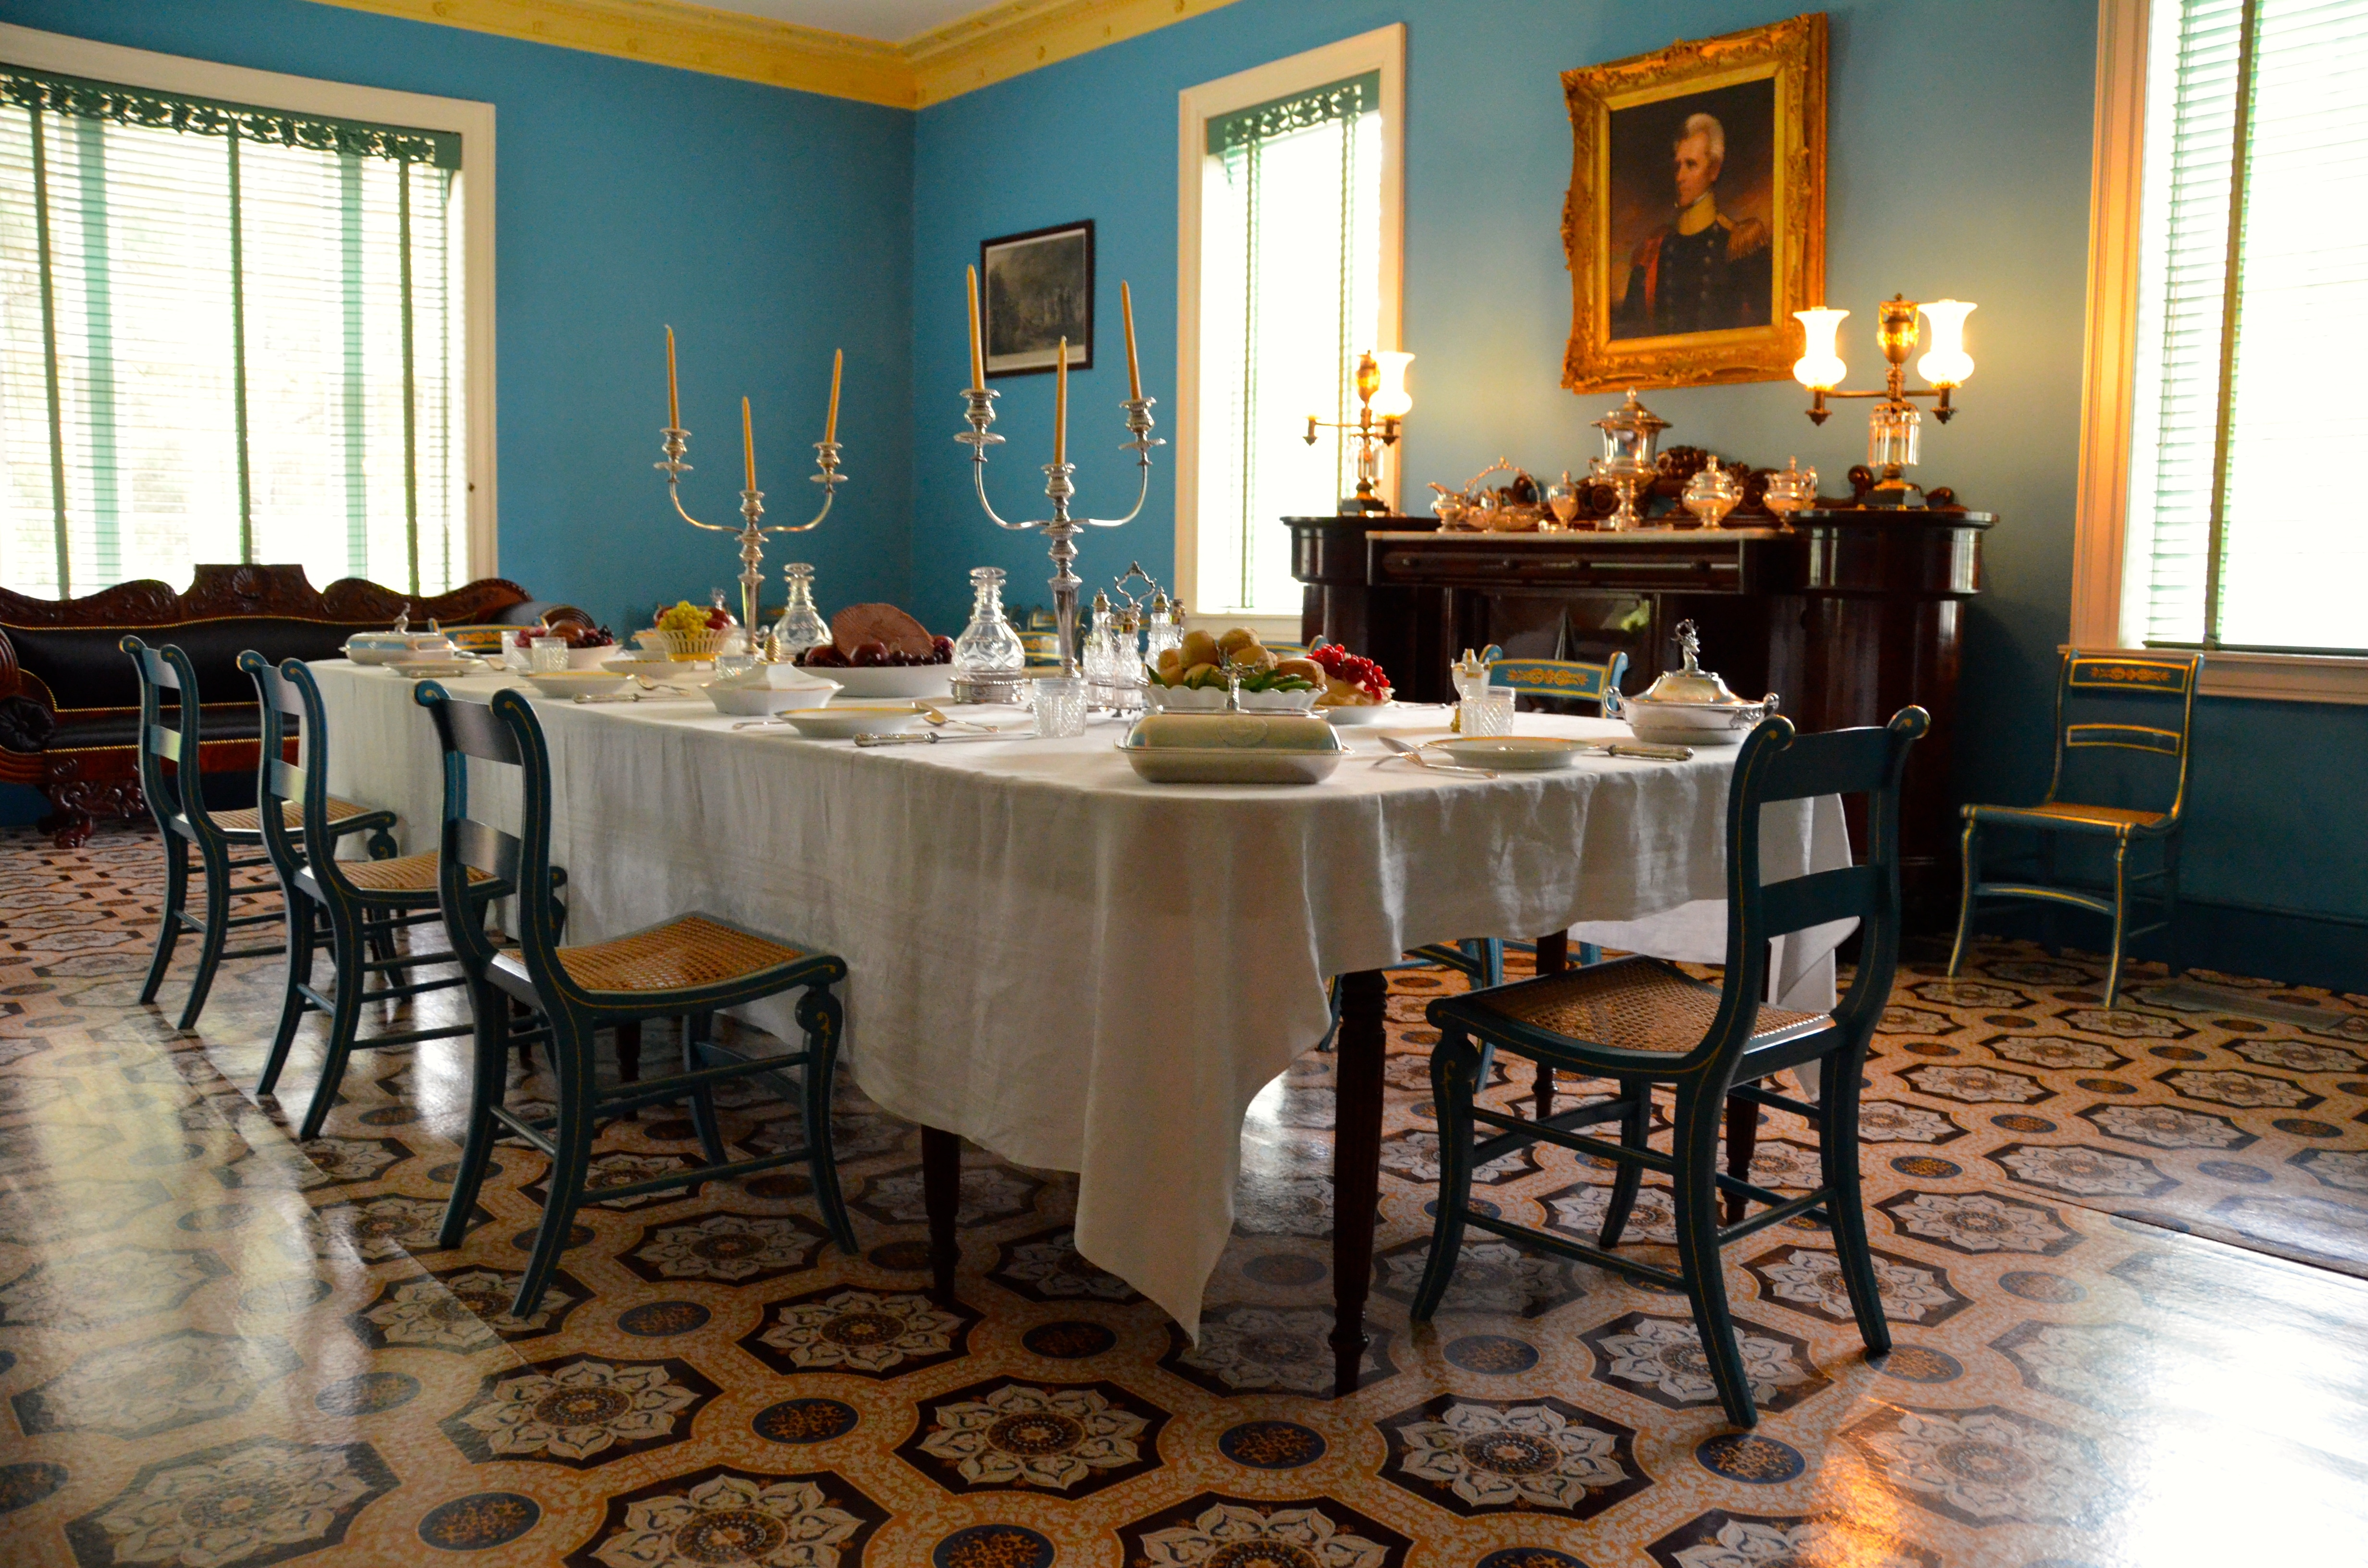 Modern School Classroom ~ Room by mansion of andrew jackson the hermitage